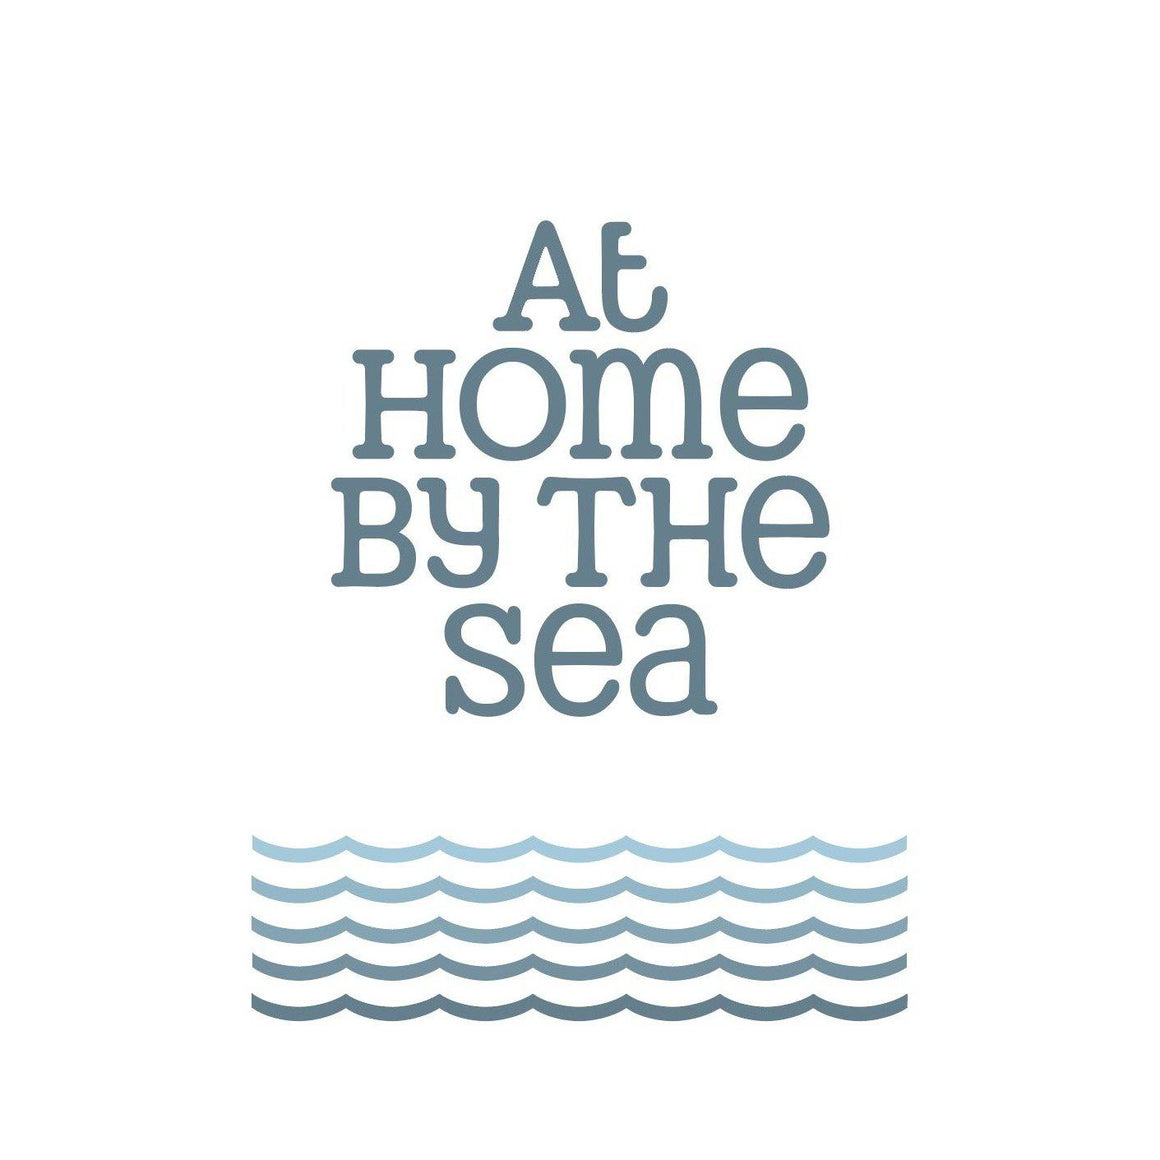 At Home by the Sea Seaside Print- Coastal Wall Art-SeaKisses